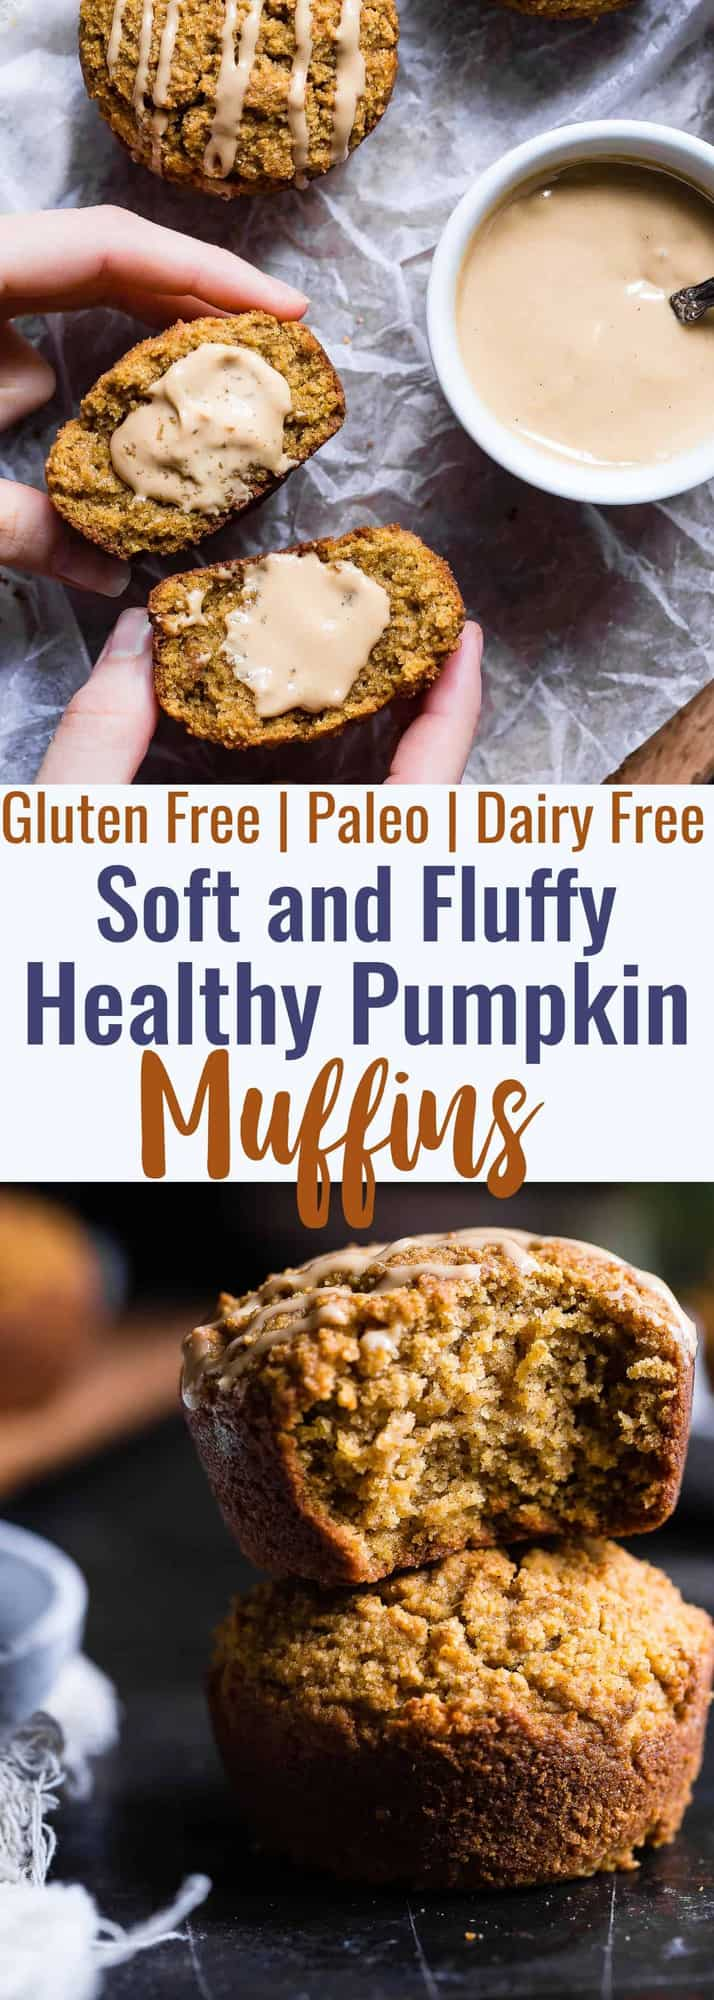 Paleo pumpkin muffins -These quick and easy, healthy almond flour pumpkin muffinsare SO spicy-sweet and FLUFFY! A yummy, fall breakfast or snack that kids or adults will LOVE! | #Foodfaithfitness | #Glutenfree #Paleo #Healthy #Pumpkin #Muffins